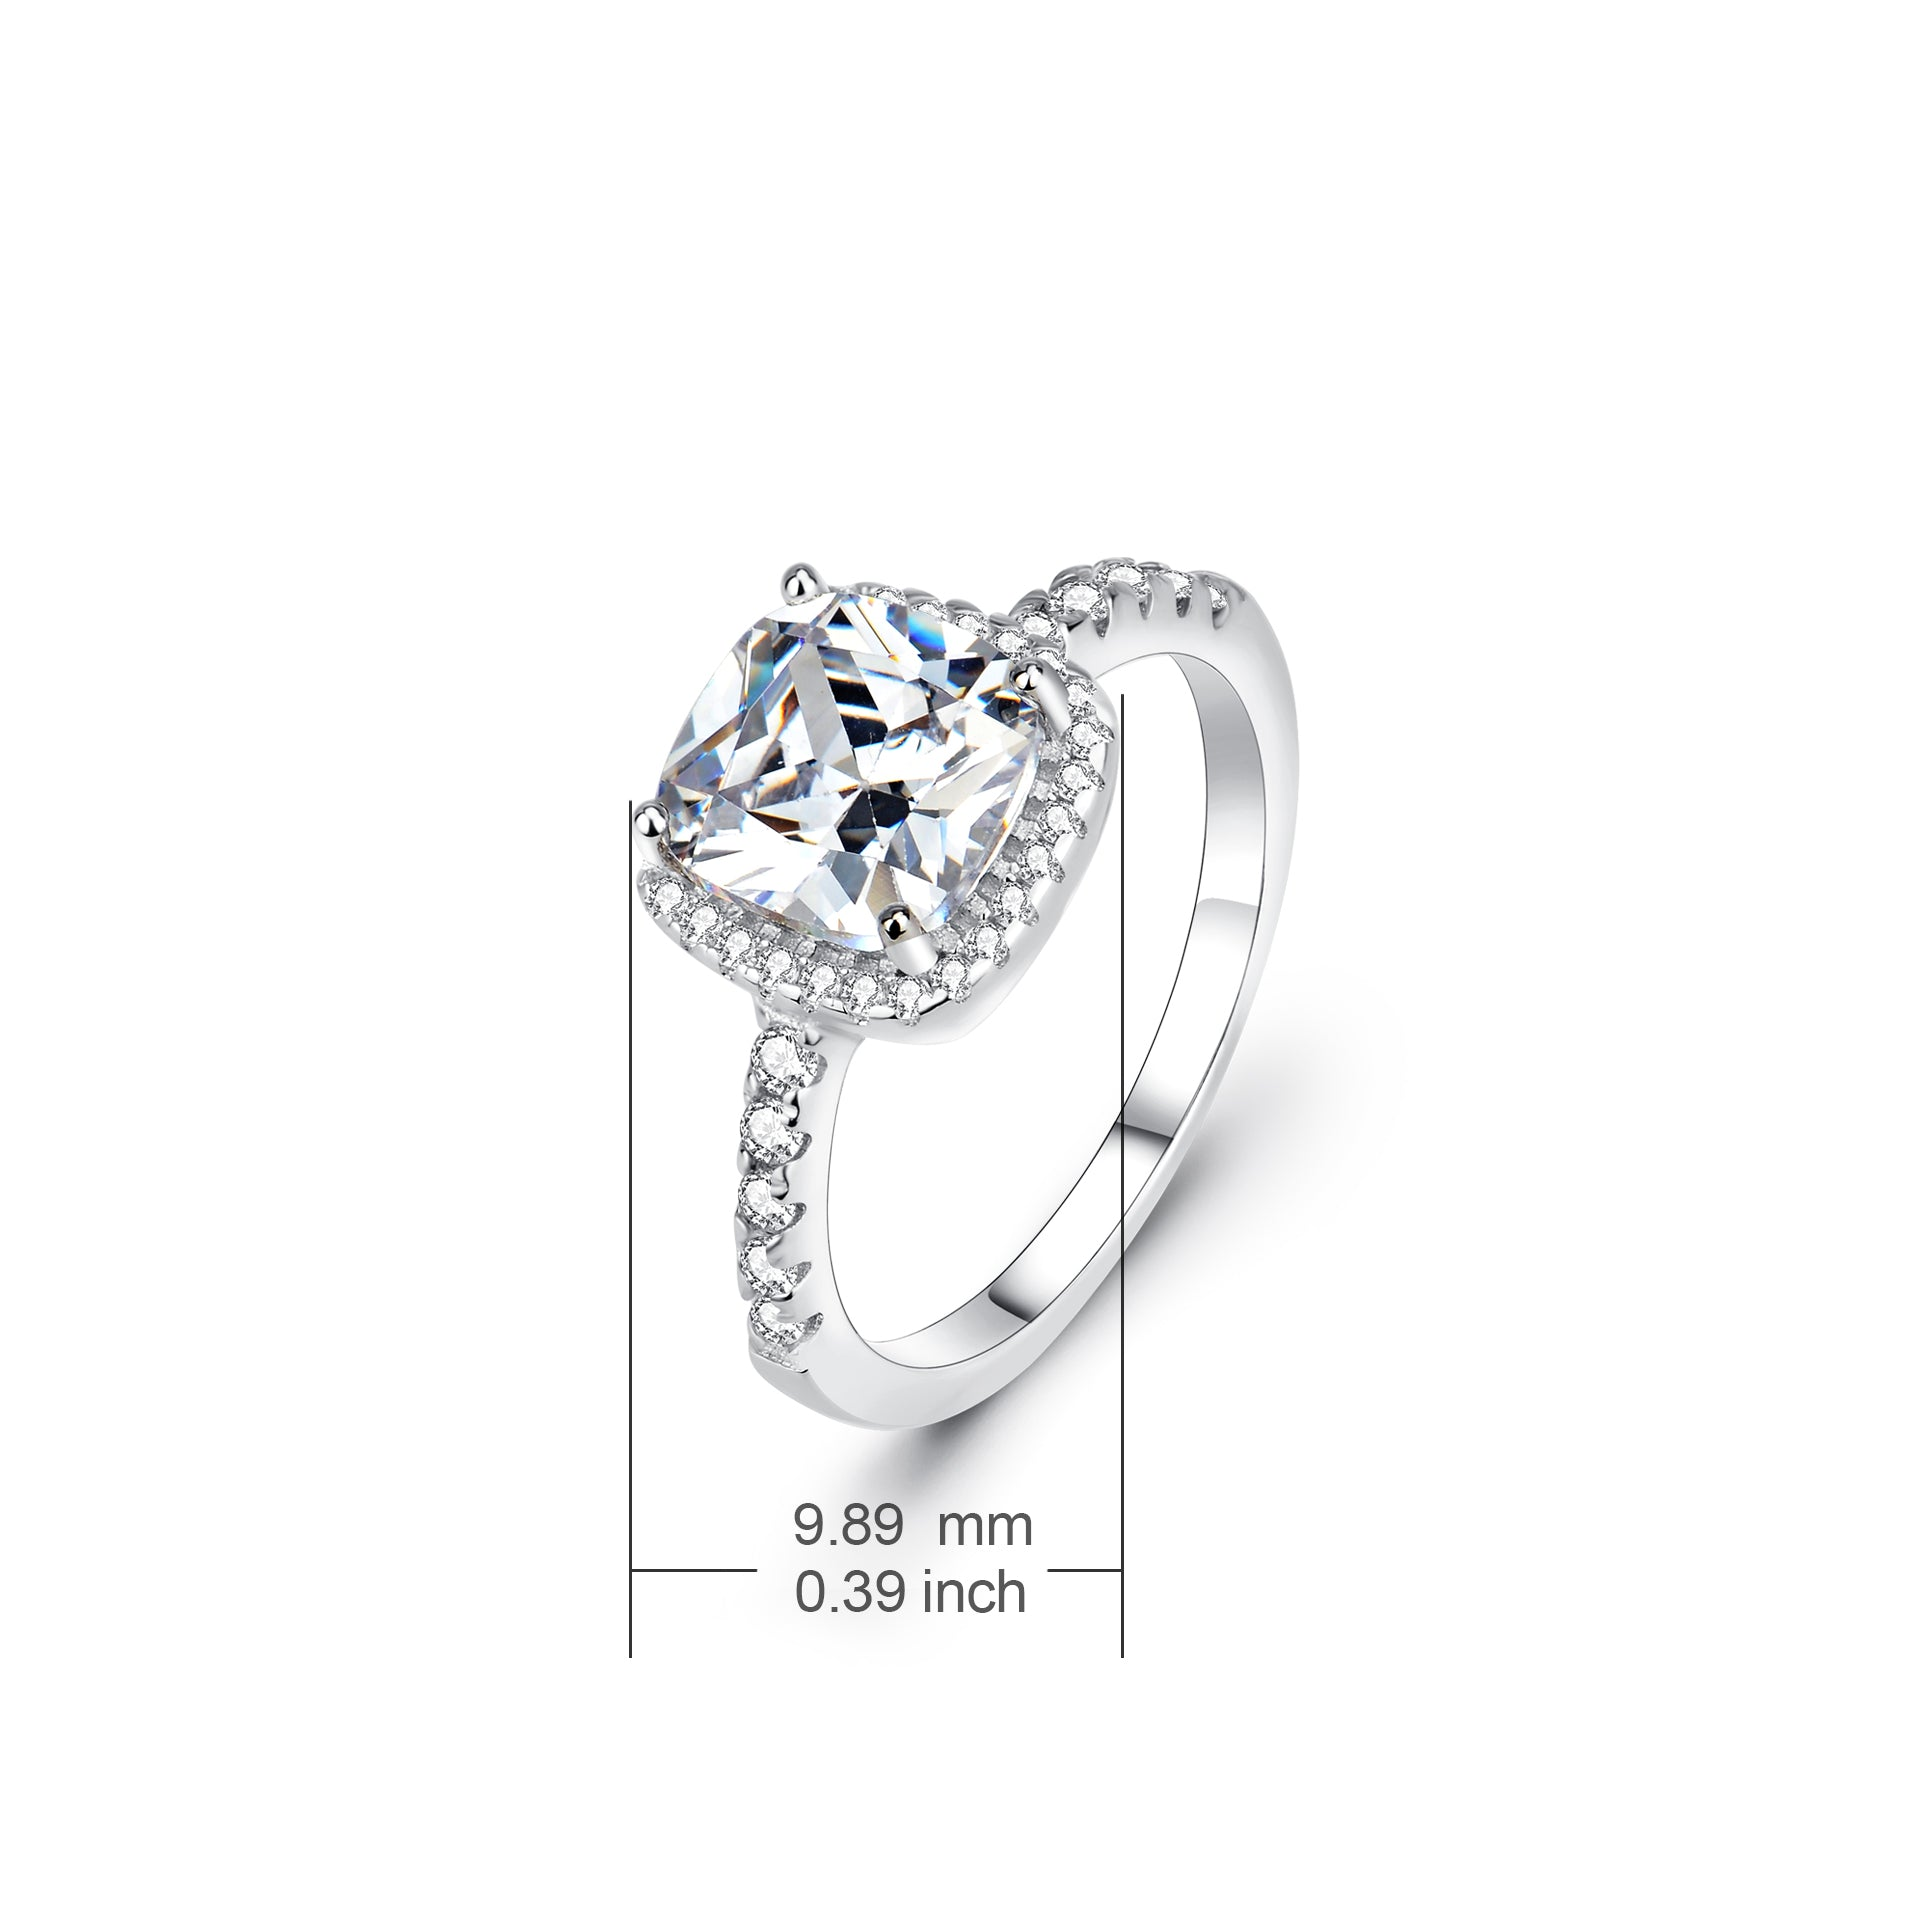 Fine Jewelry Ring Genuine 925 Sterling Silver Engagement Rings for Women